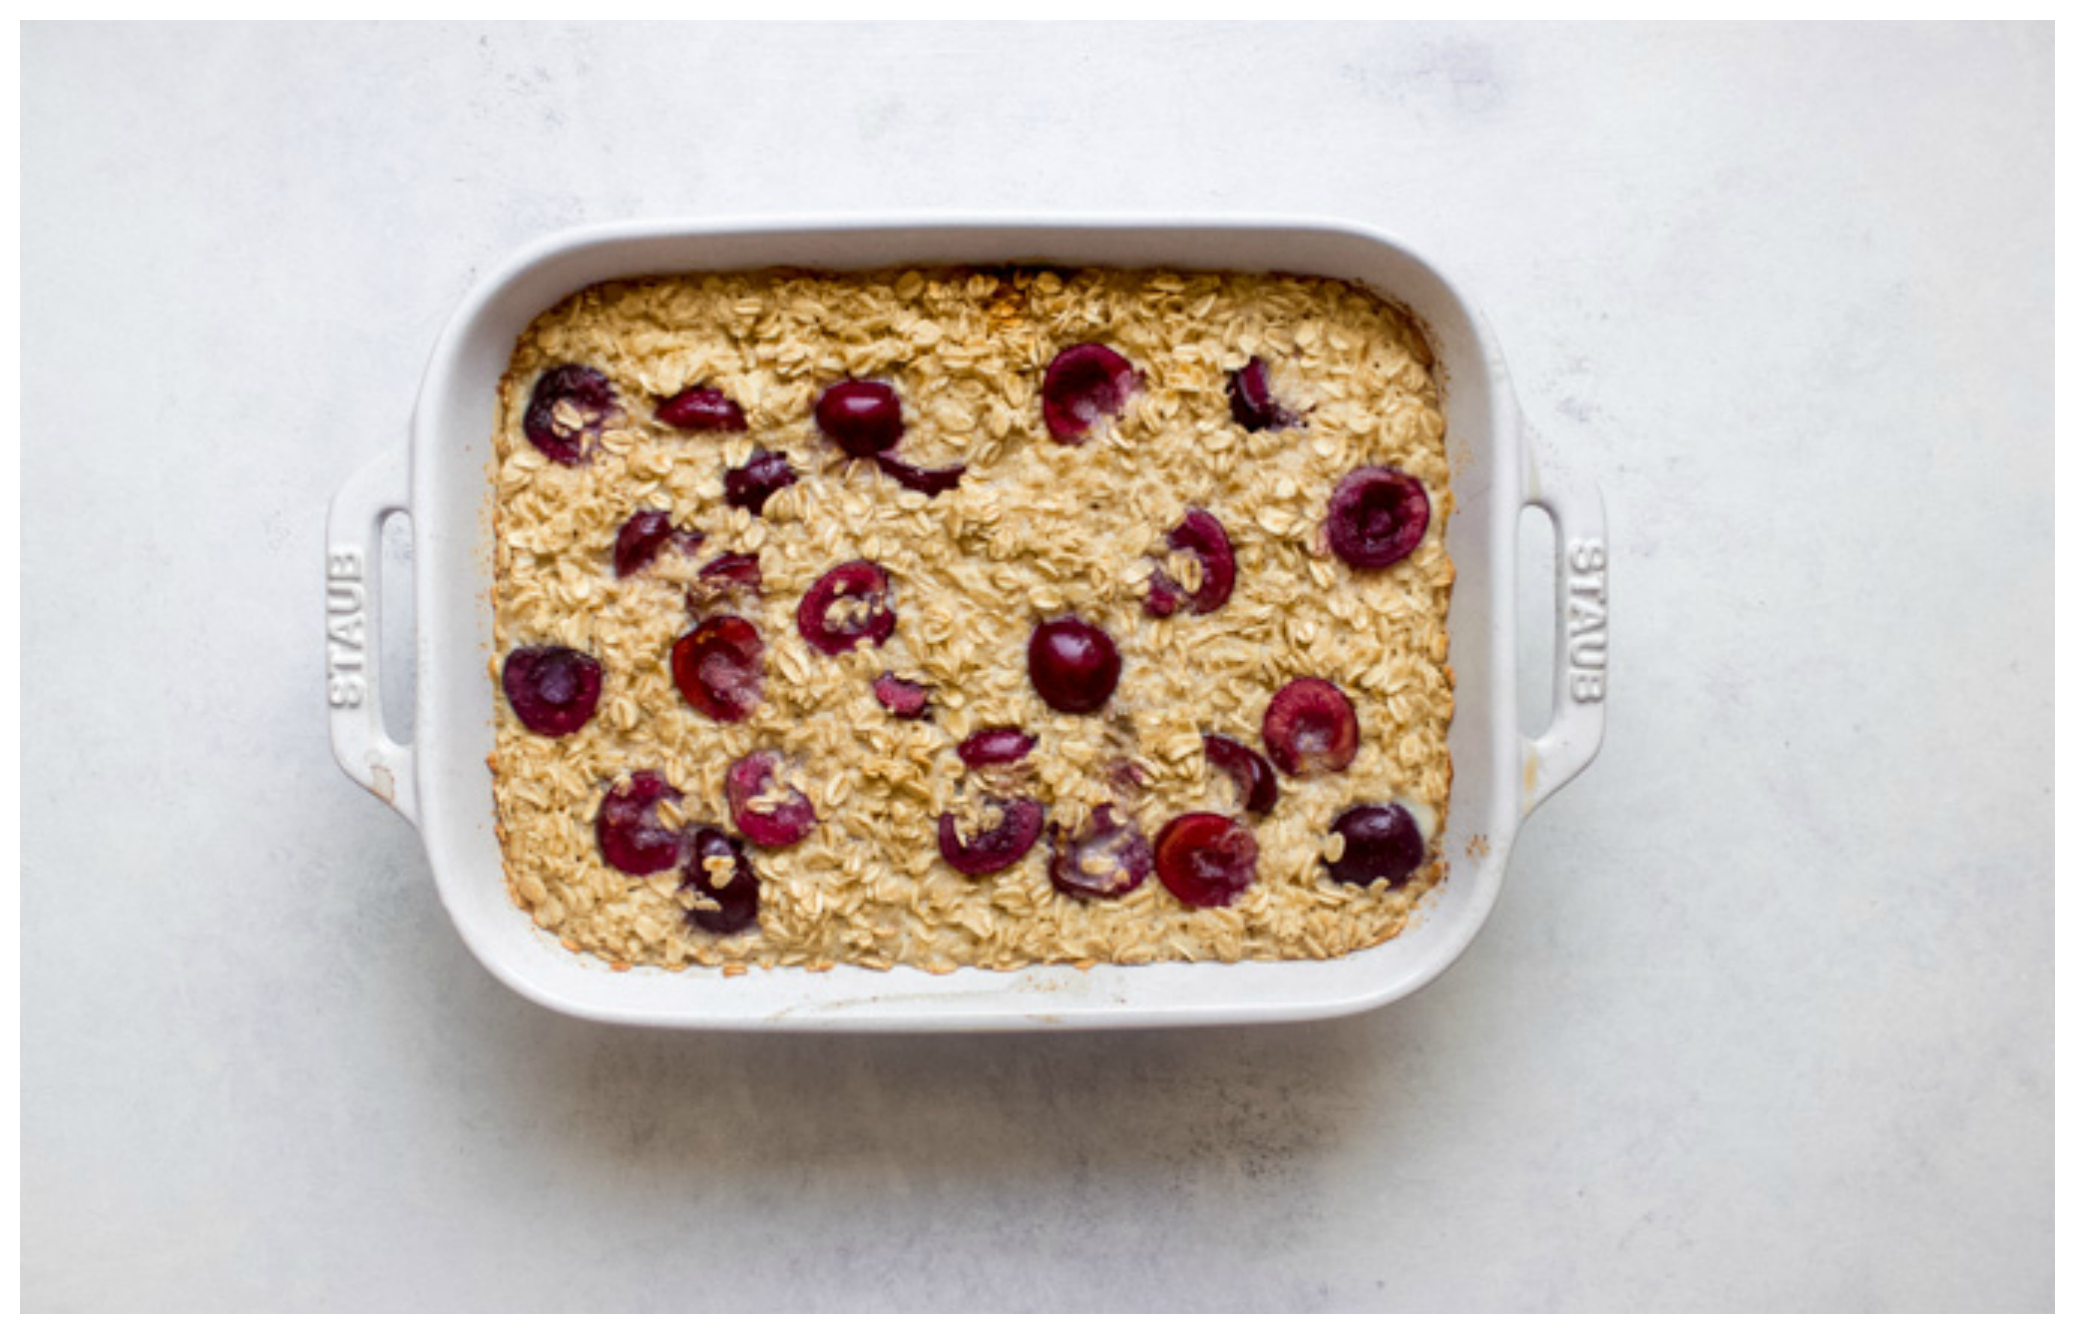 Baked oatmeal with cherries and milk